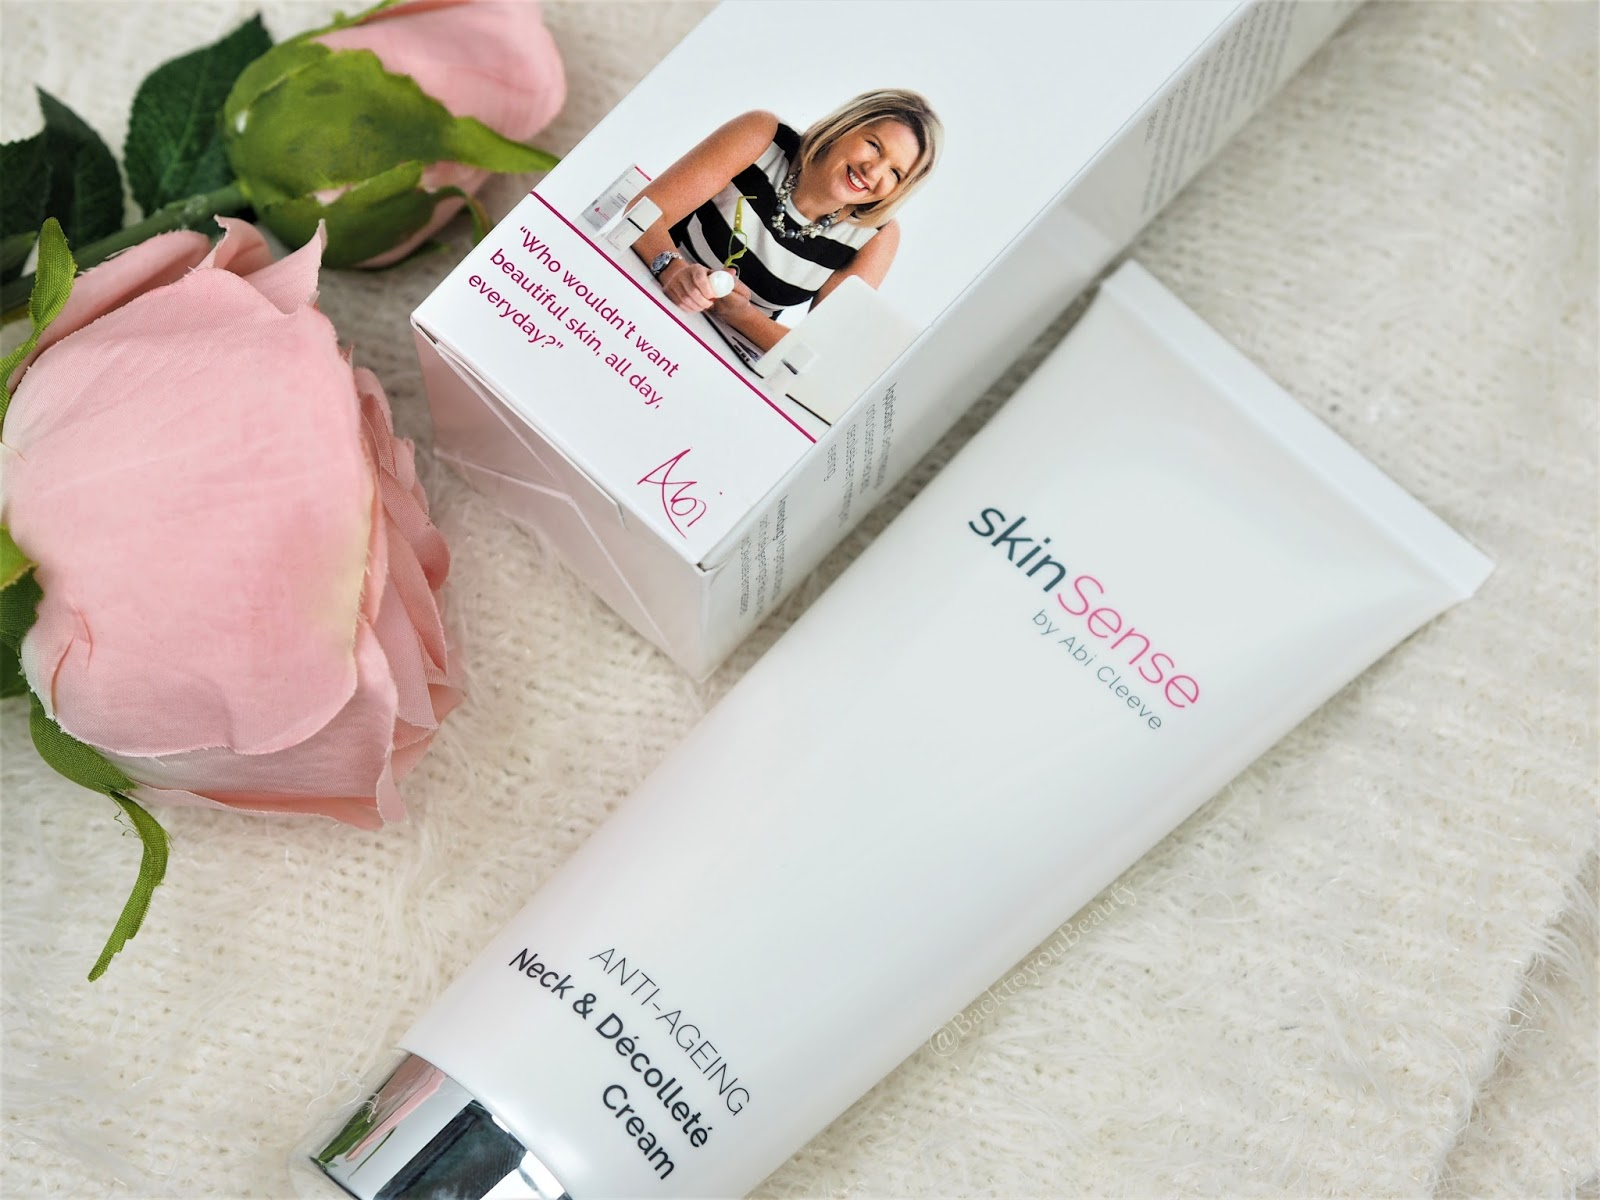 Skinsense Neck and Dec Cream BPOM